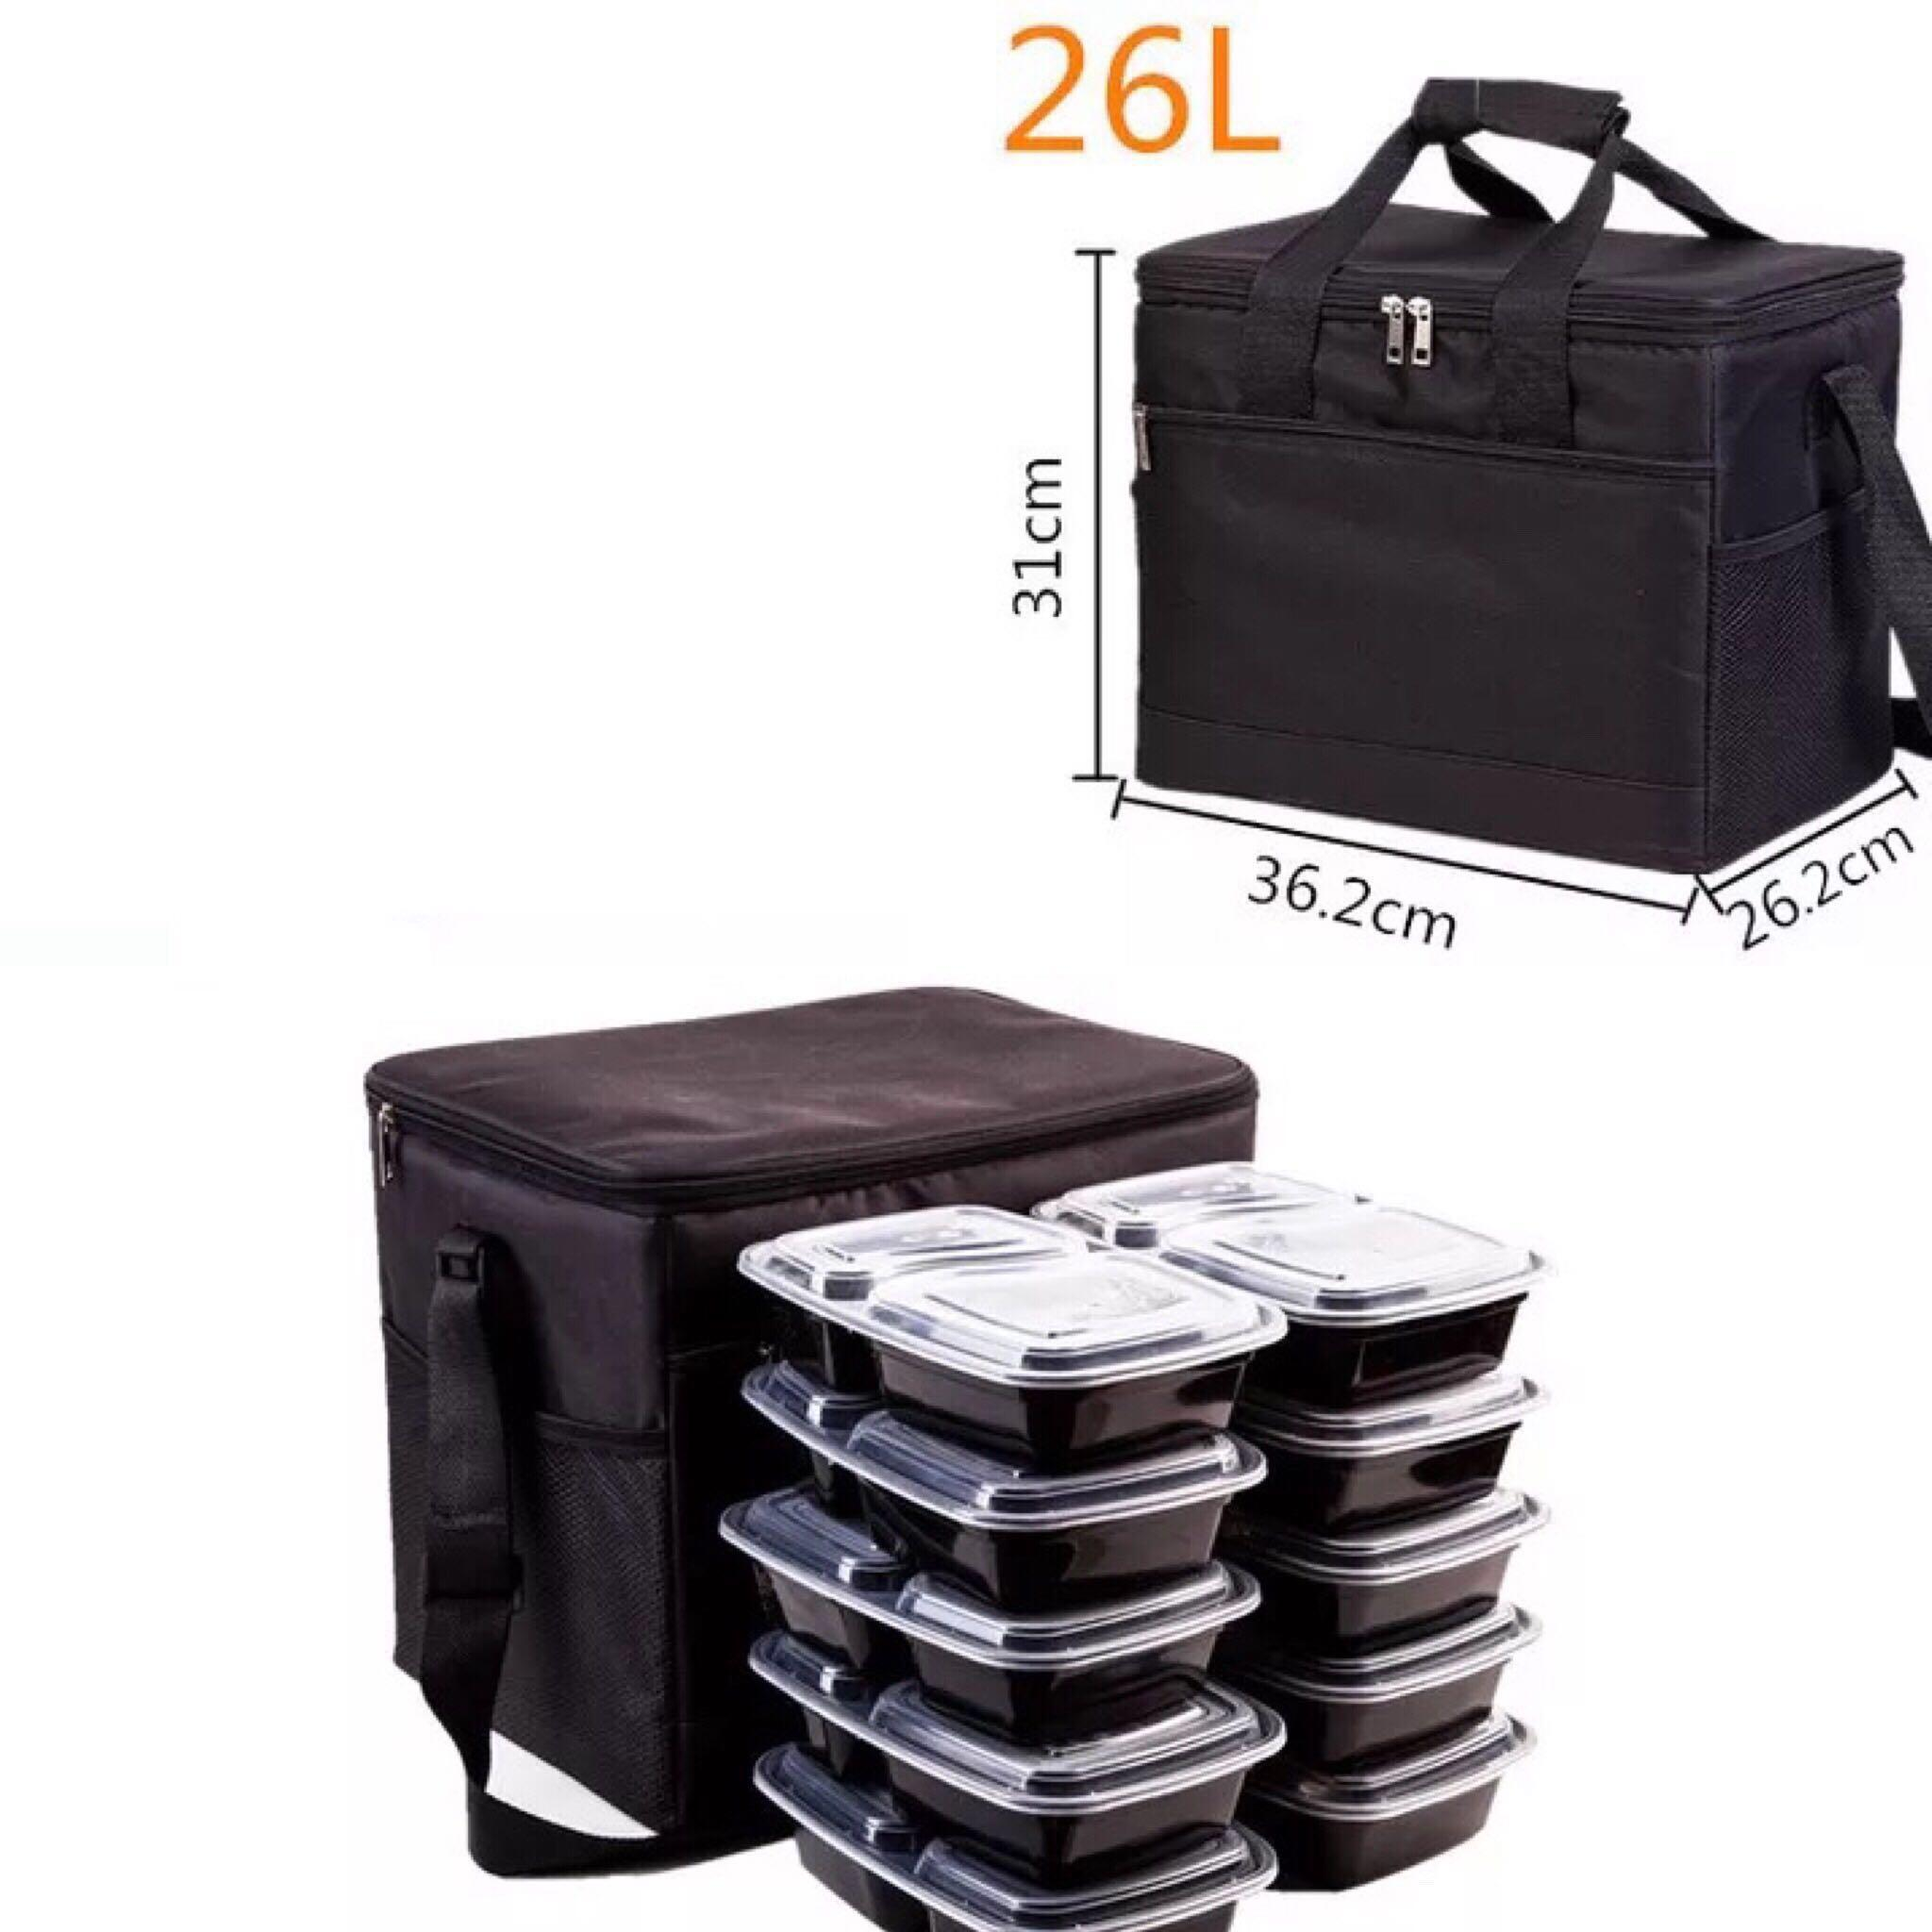 Thermal cooler warmer travel delivery food bag